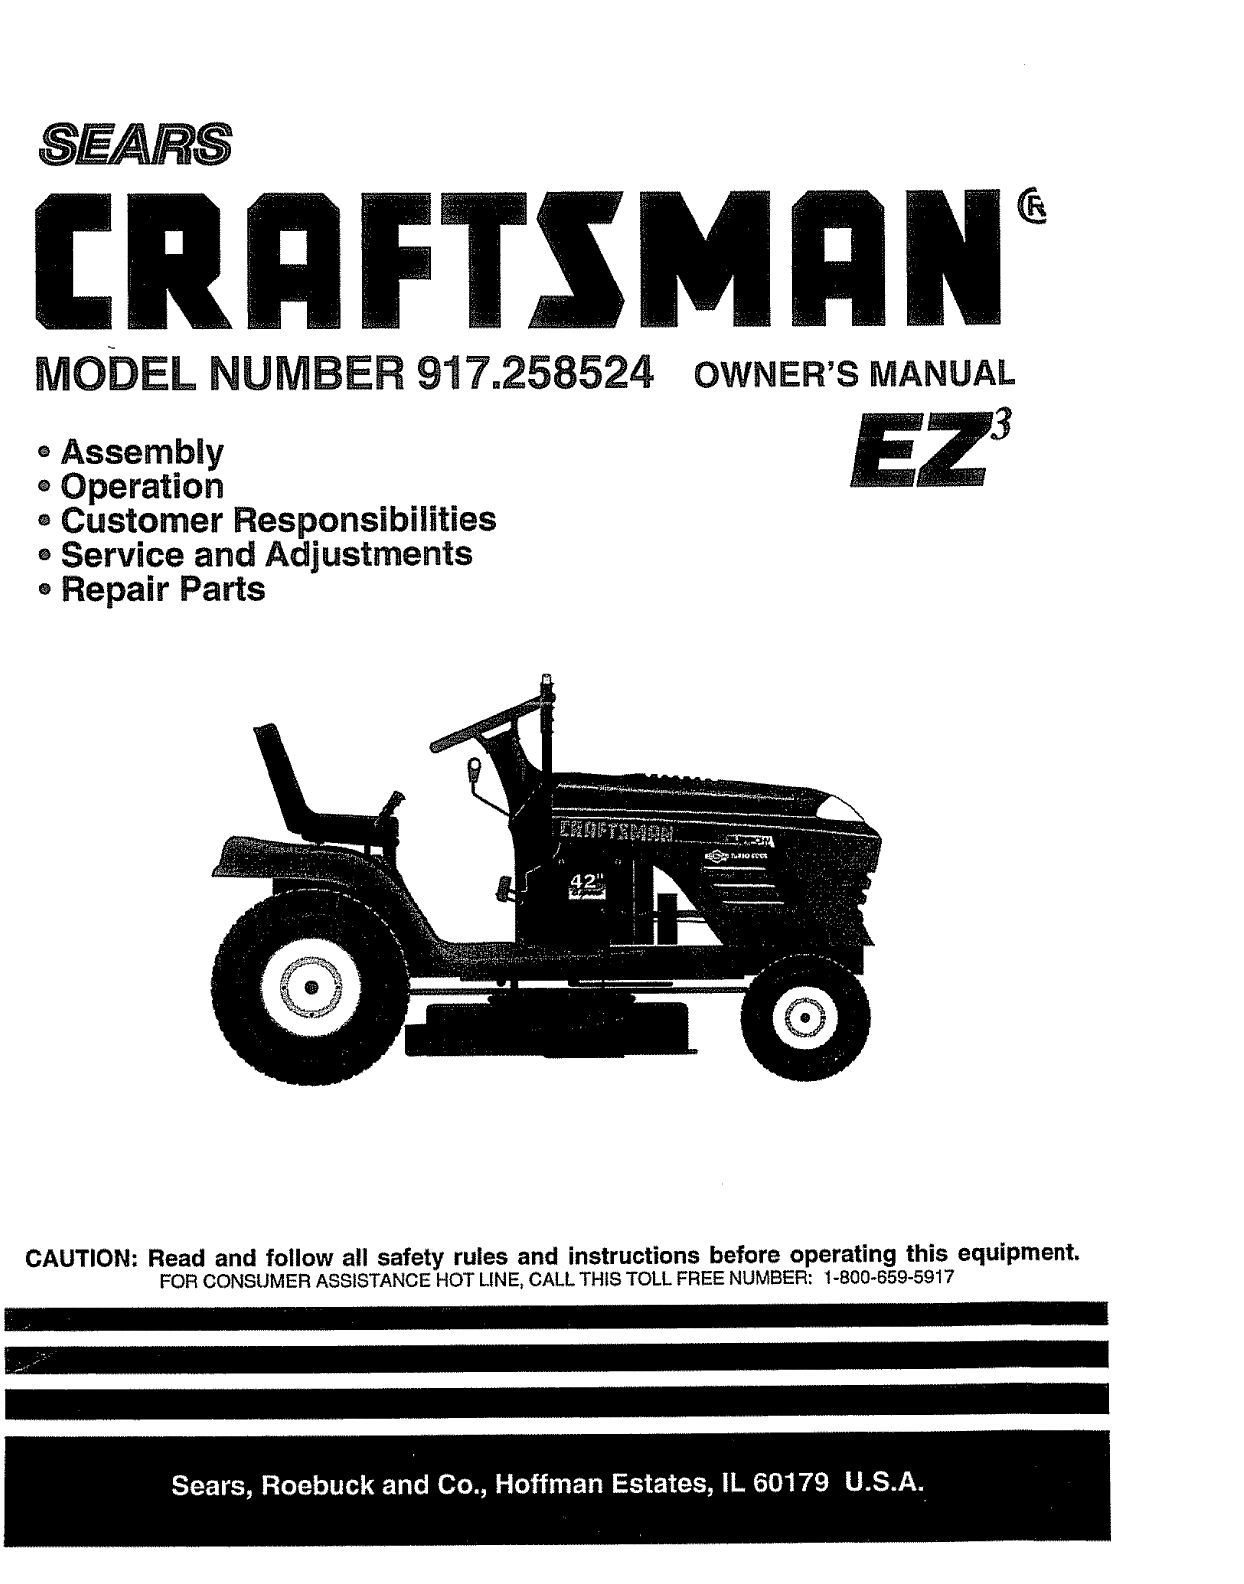 Sears Lawn Mower 917 User Guide